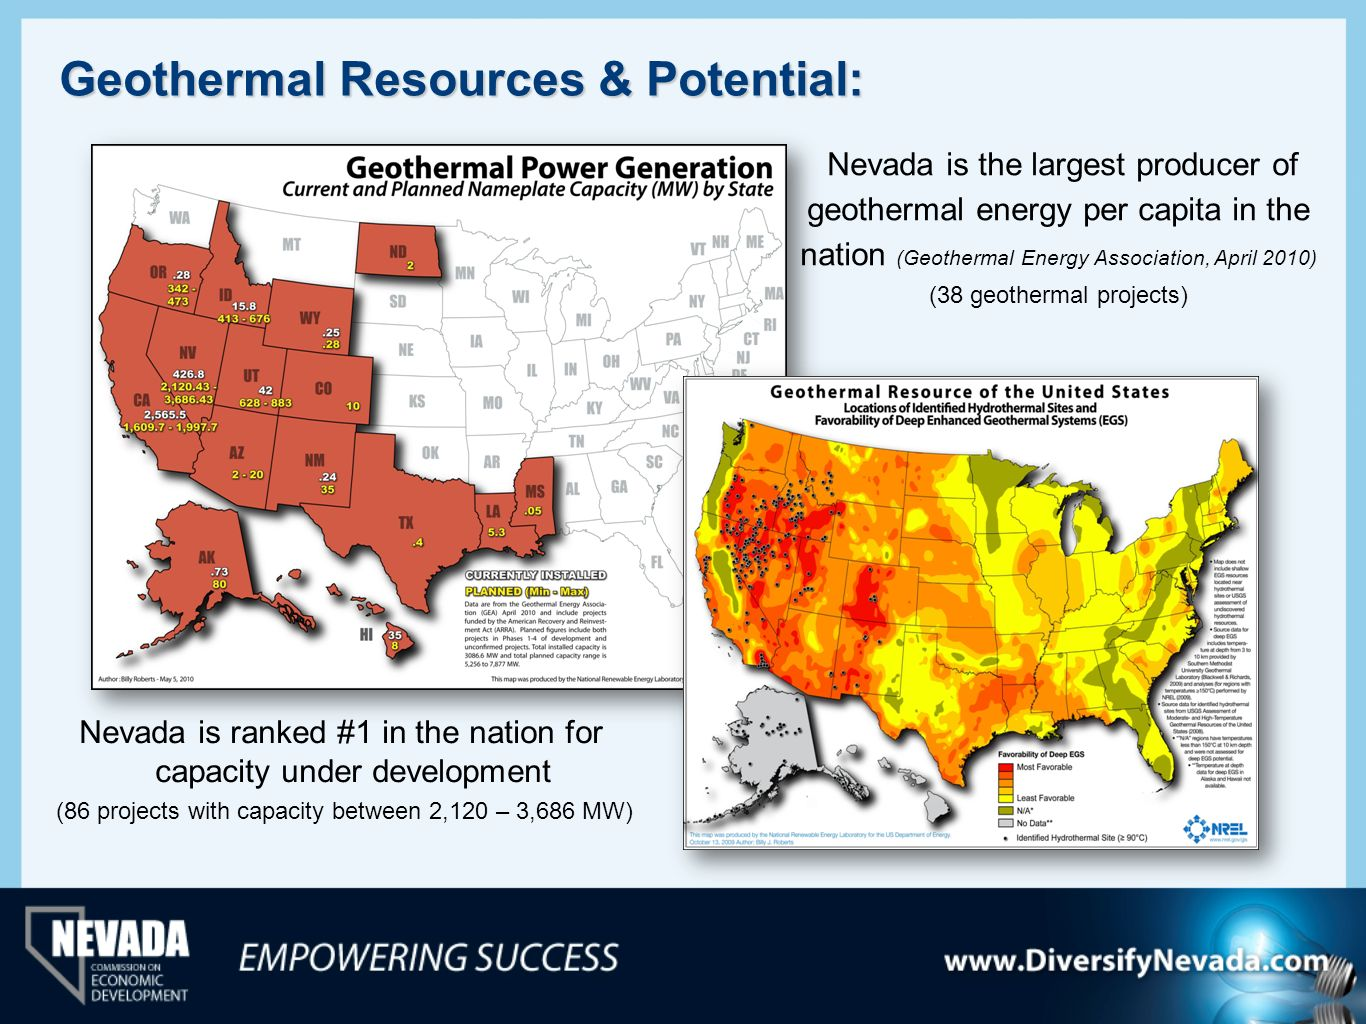 Geothermal Resources & Potential: Nevada is ranked #1 in the nation for capacity under development (86 projects with capacity between 2,120 – 3,686 MW